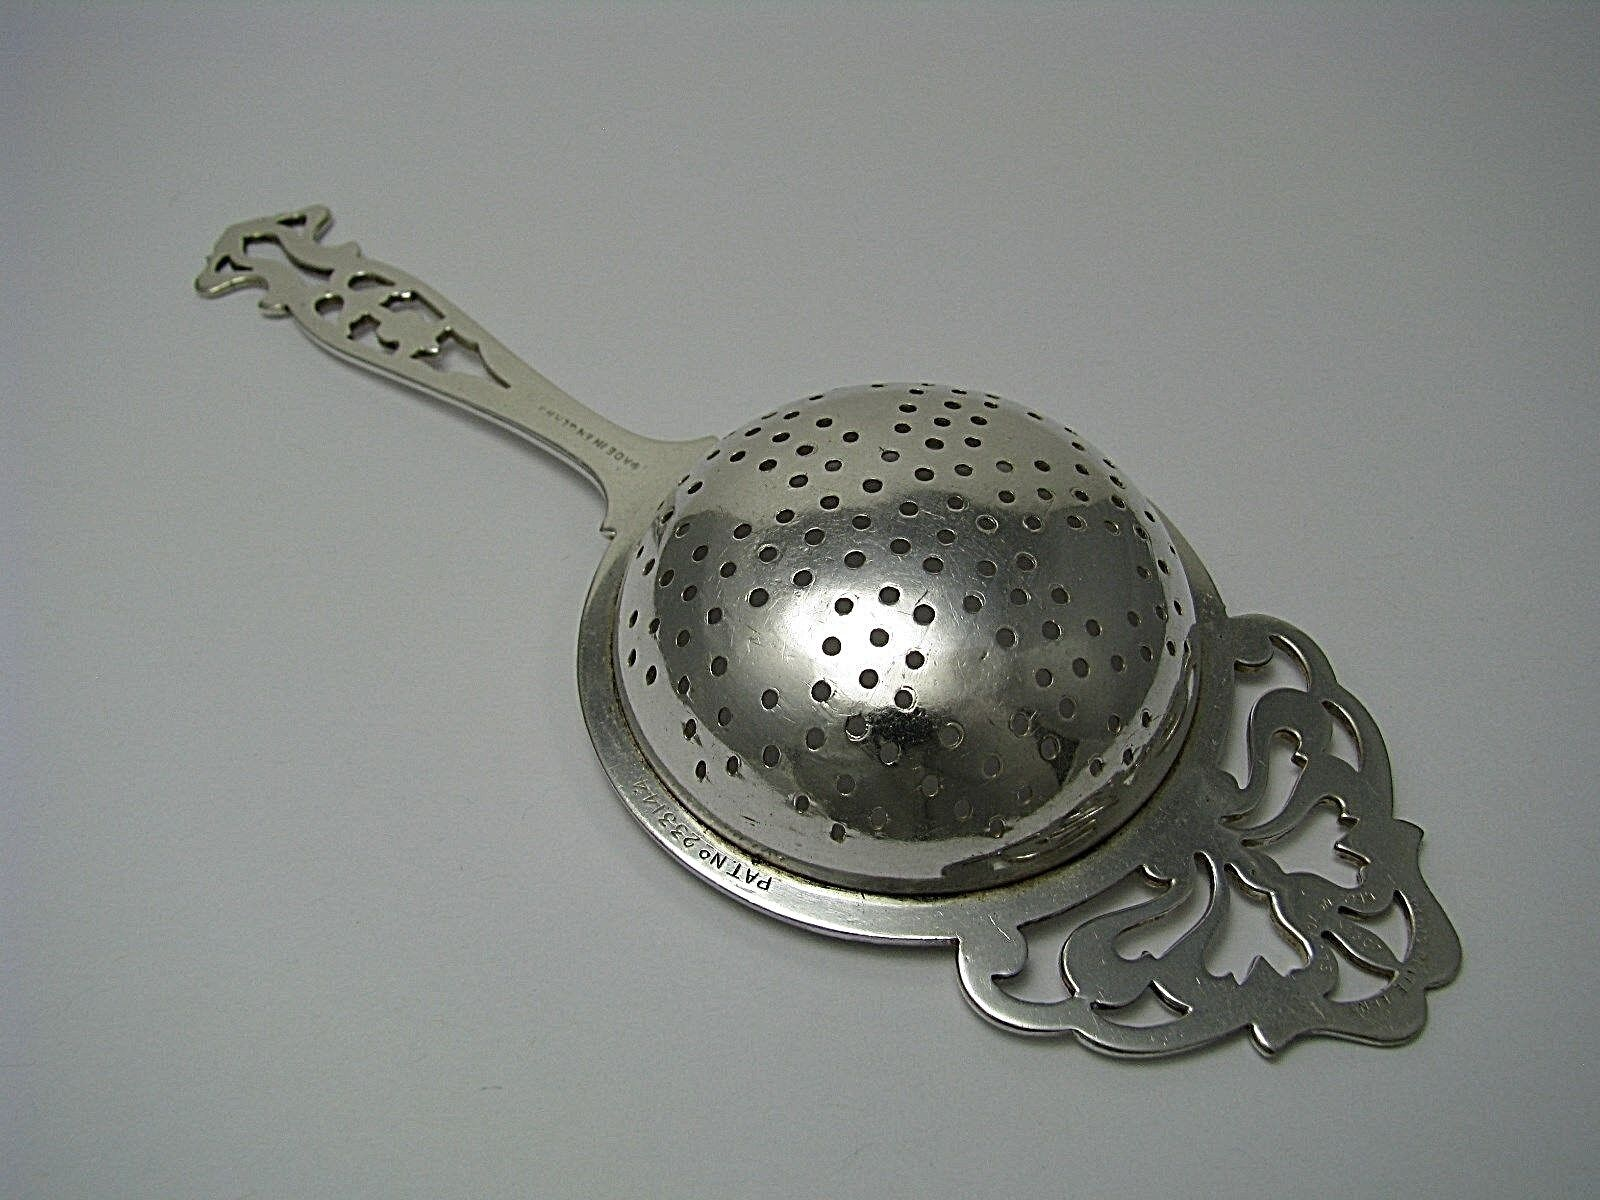 SILVER PLATED TEA STRAINER SIFTER SERVING SPOON By William Sucking England C1924 - $145.00